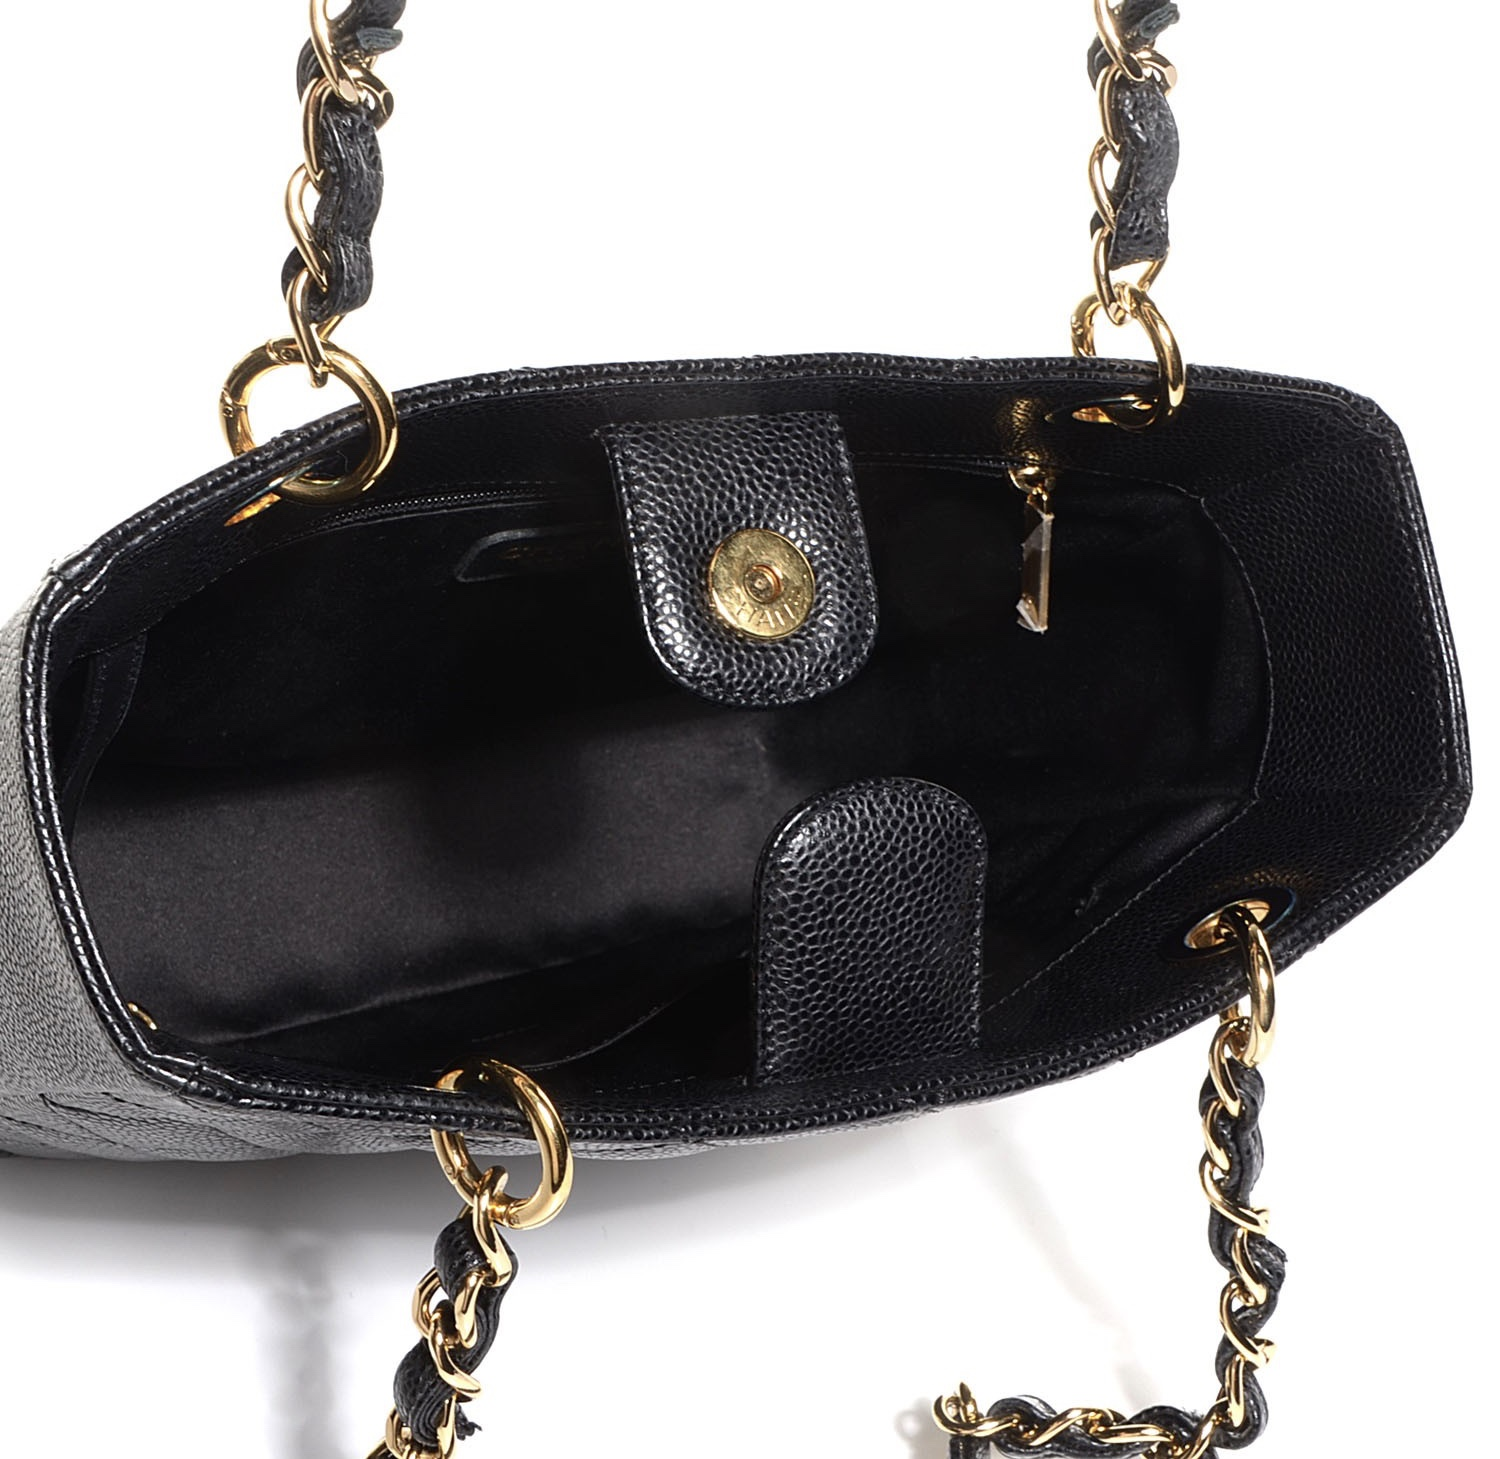 9865ccd3993 Chanel PST Black Caviar Petit Shopping Tote Bag - Luxurylana Boutique